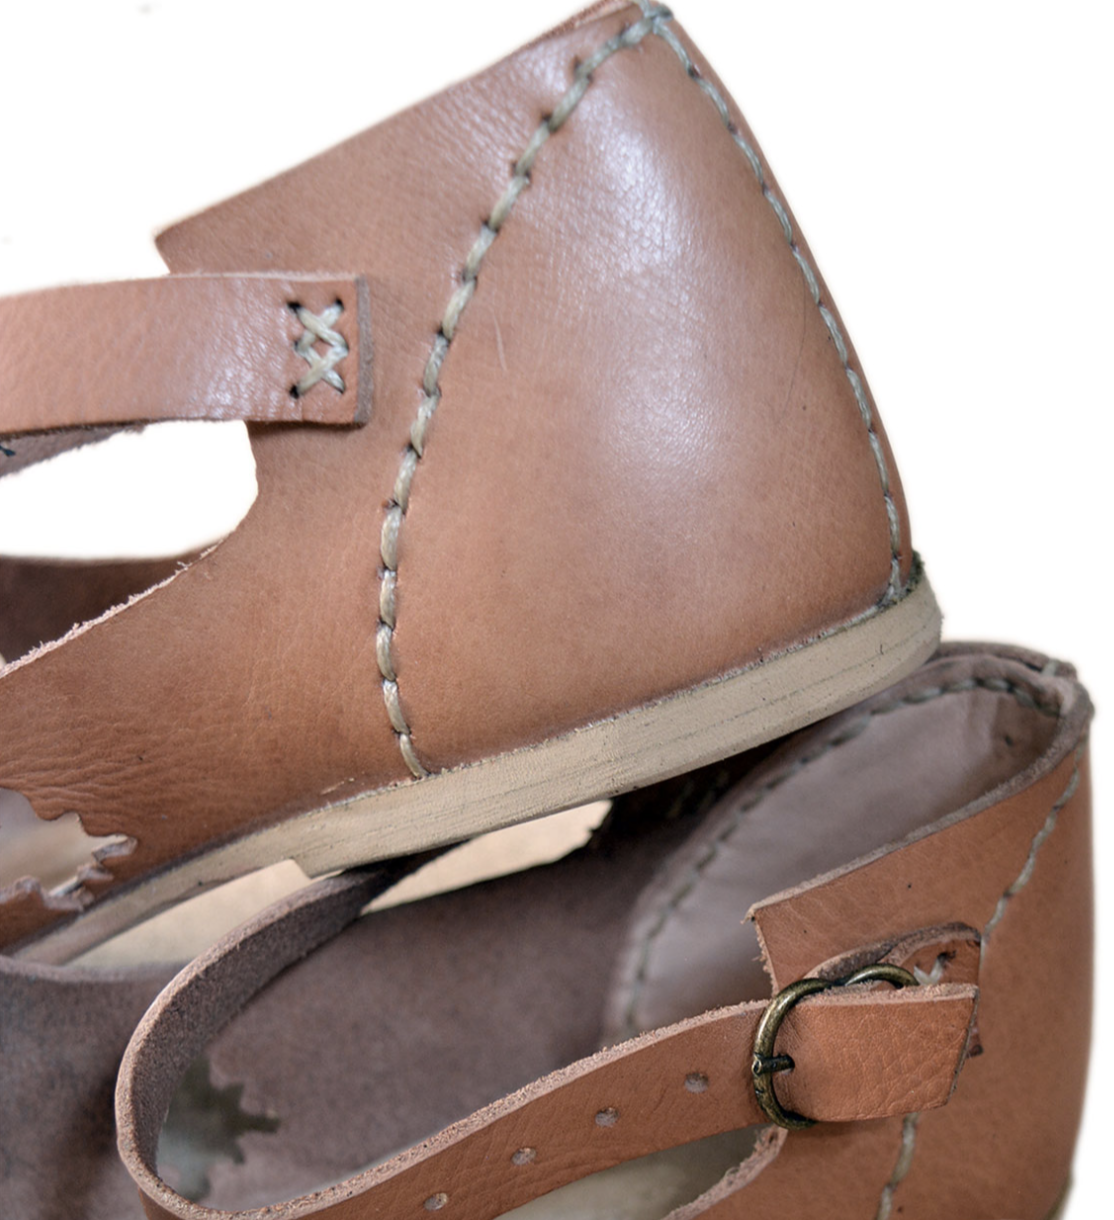 Chaussures Dame : KSR1399 - 170 €